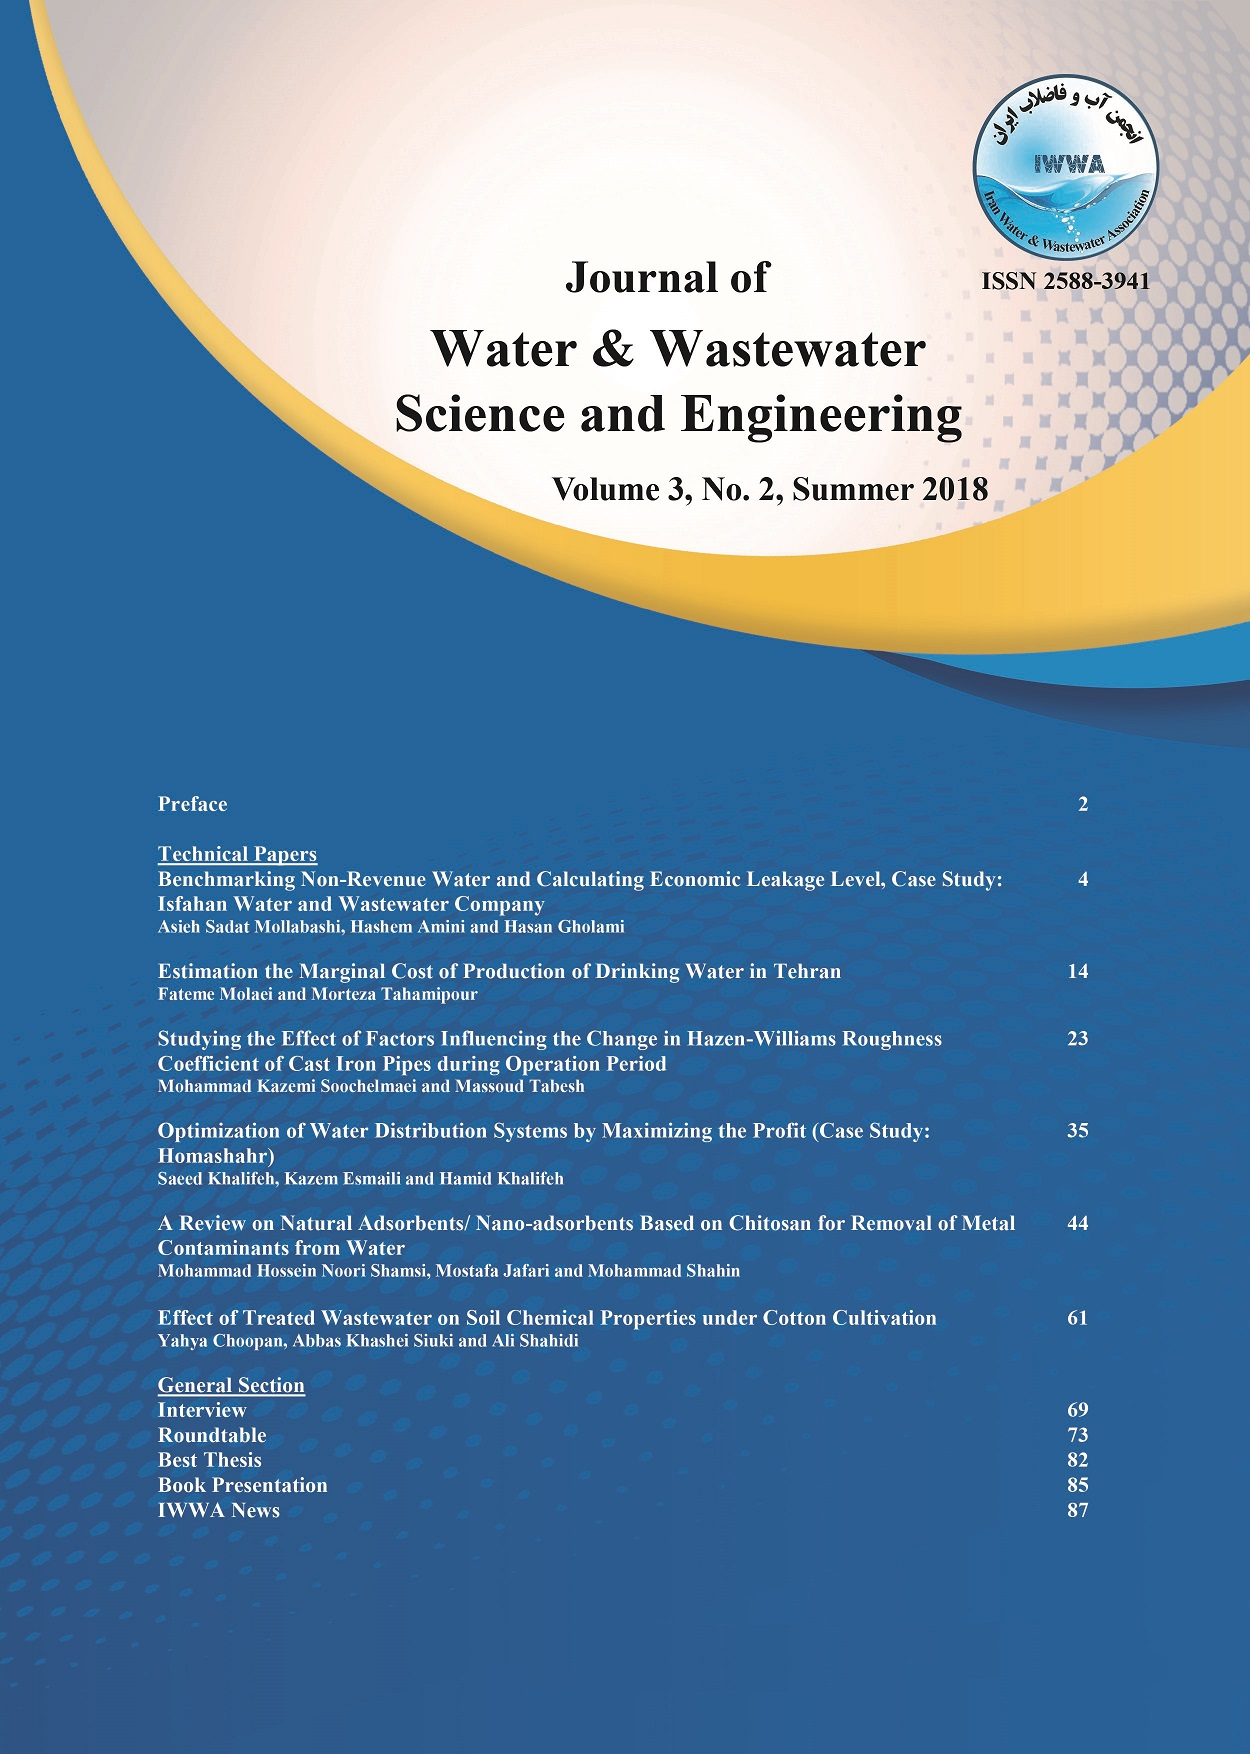 Journal of Water and Wastewater Science and Engineering